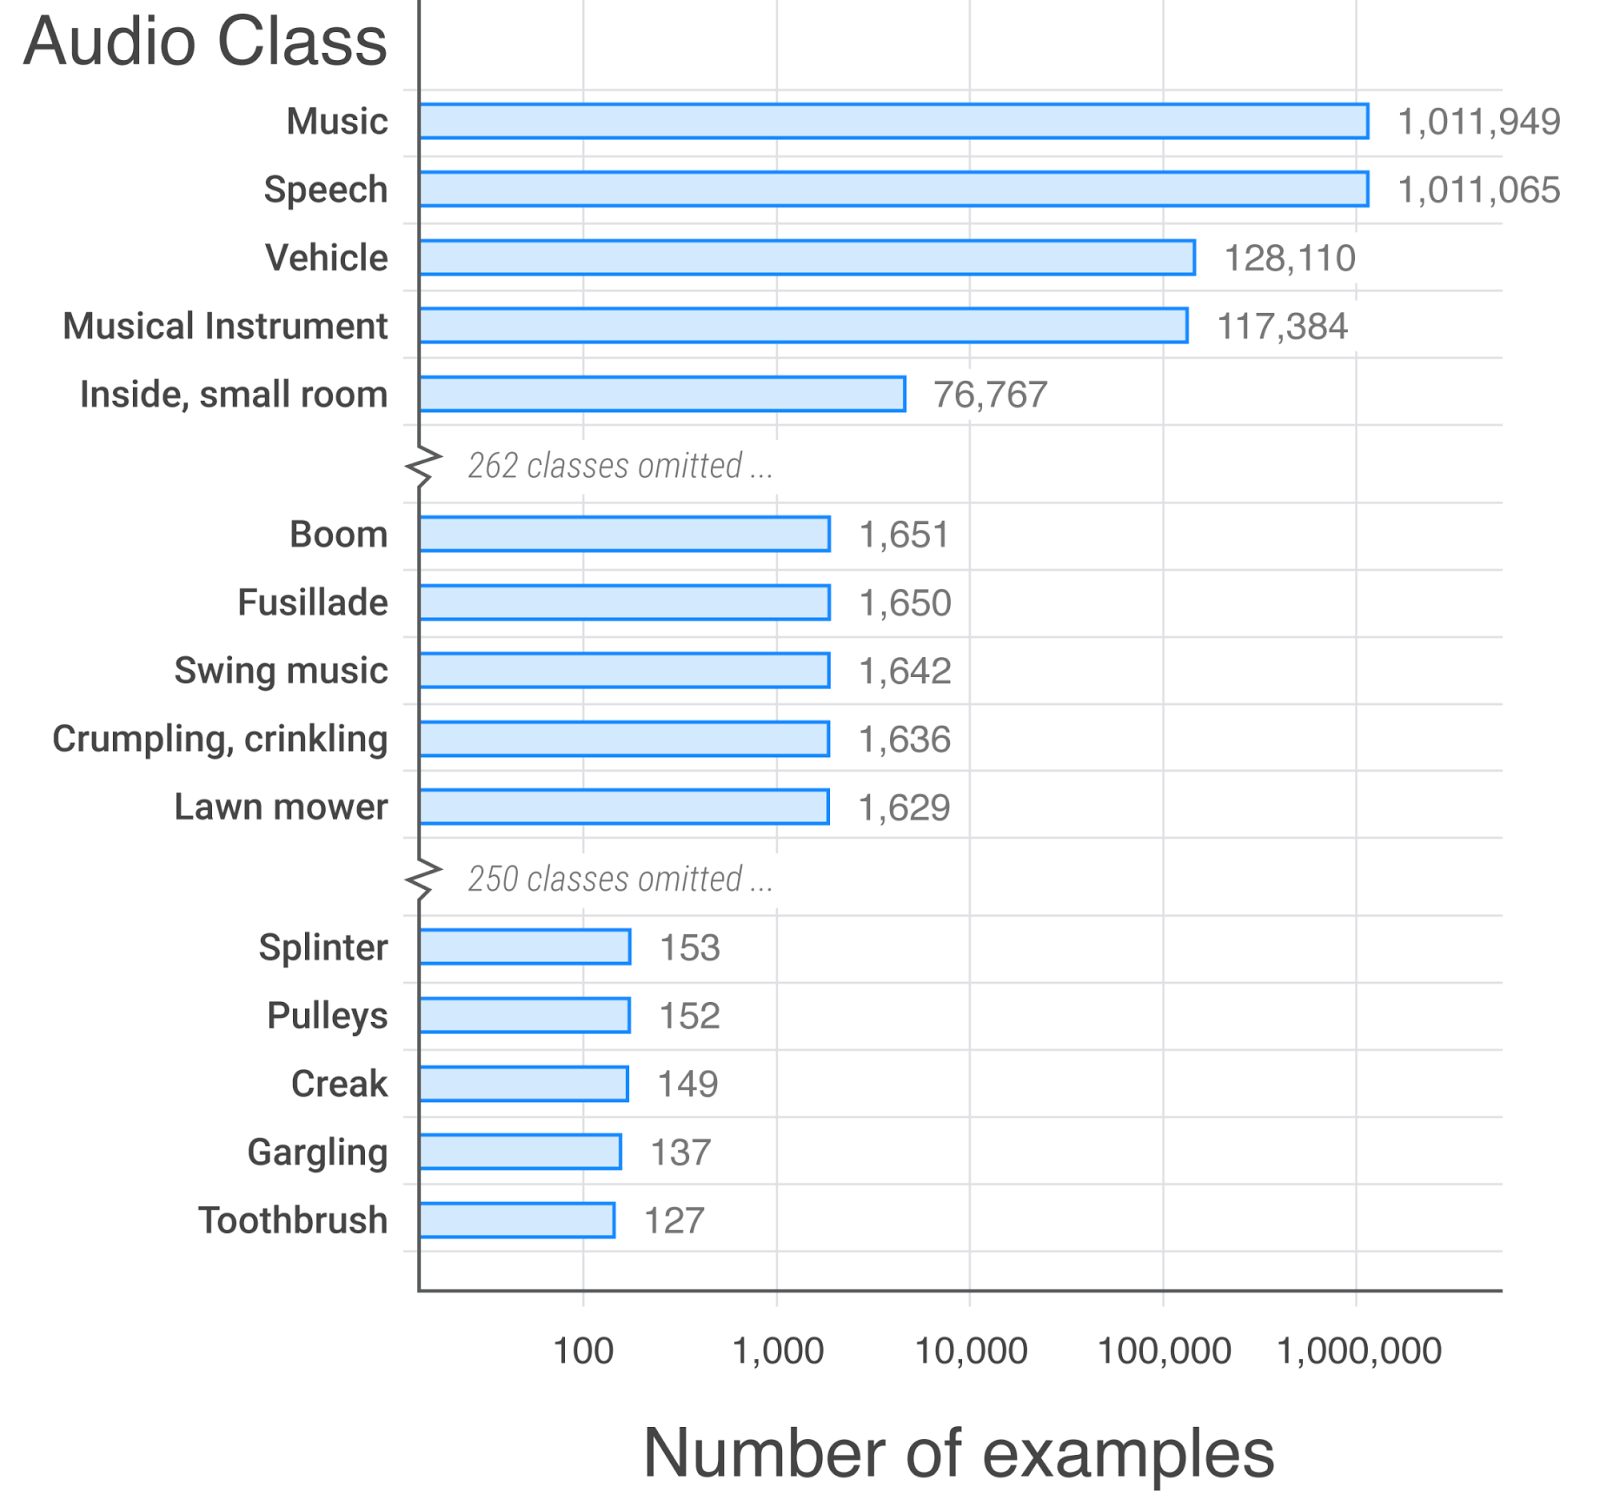 A histogram showing the number of examples for each audio class. 'Music' has a little over a million at the top, and 'toothbrush' only has 127.